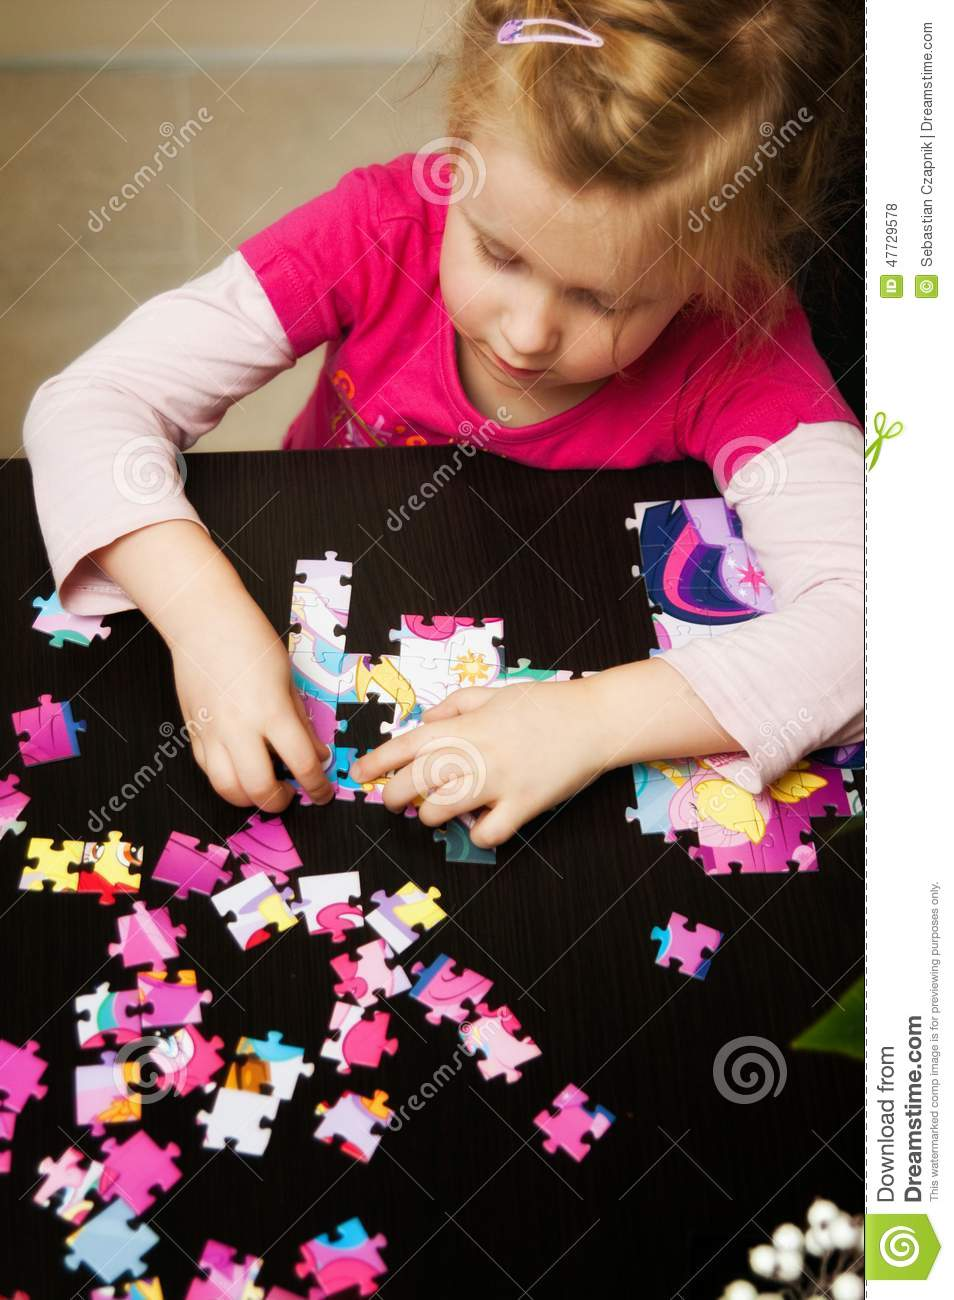 Adorable Four Year Boy With Big Blue Eyes Stock Image: Girl Playing With Jigsaw Puzzle Stock Photo